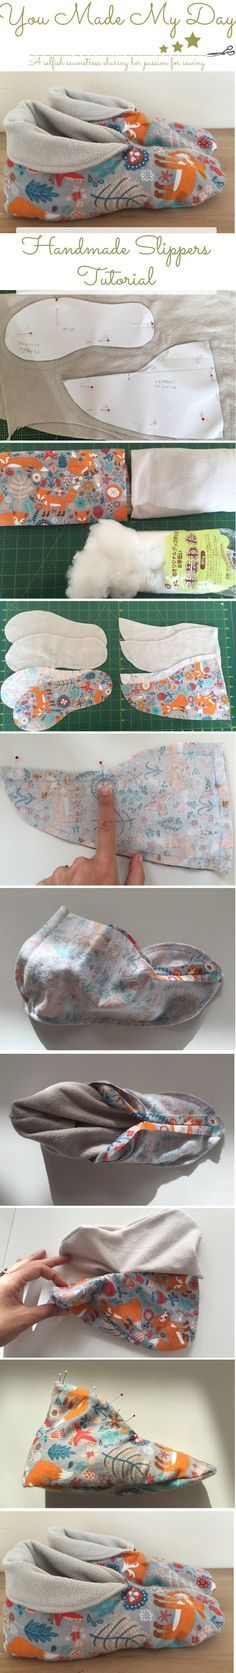 Handmade slippers tutorial and pattern. For more sewing patterns and tutorials, visit http://you-made-my-day.com/blog